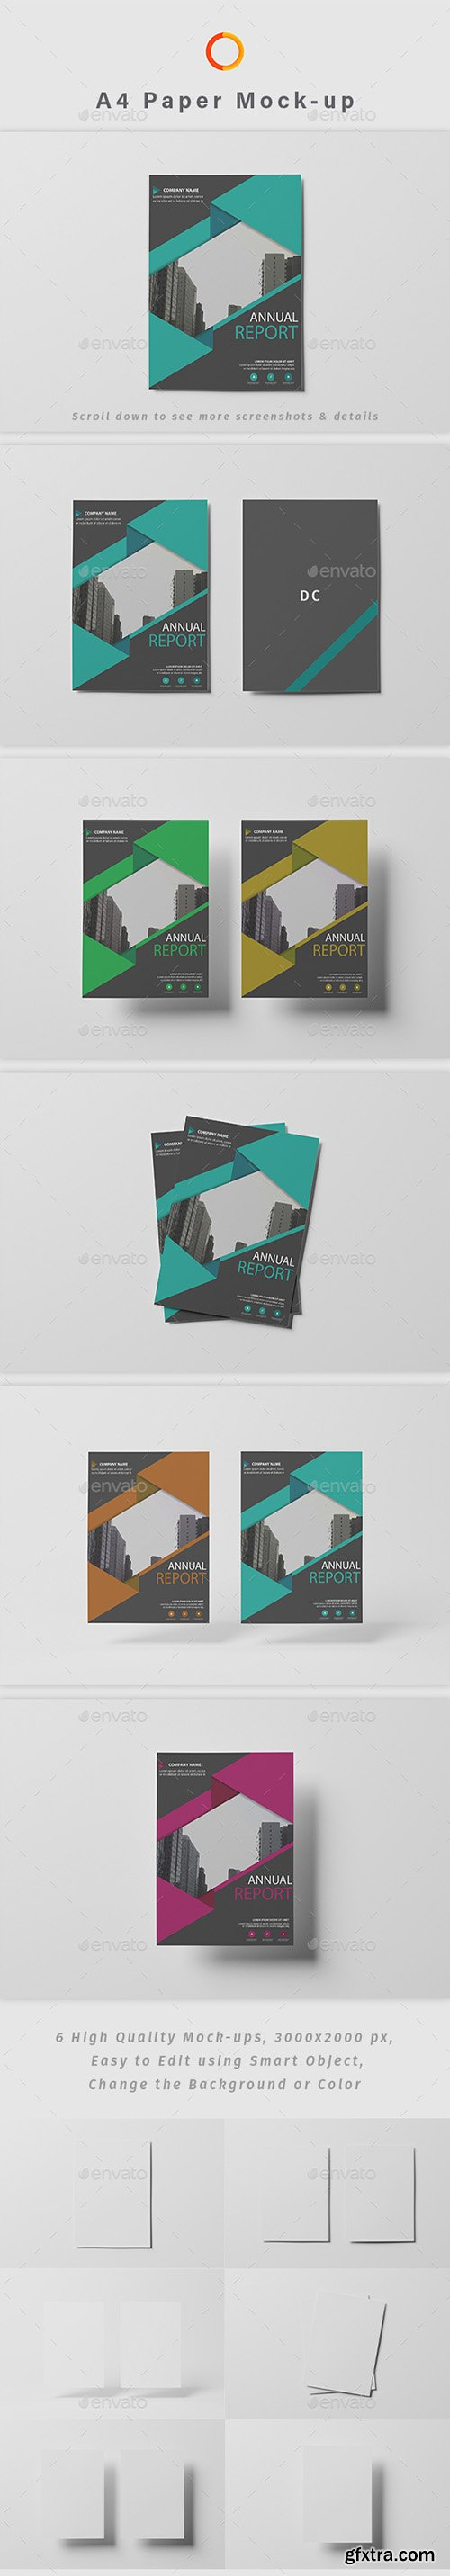 A4 Paper Photoshop Mock-up 22910038